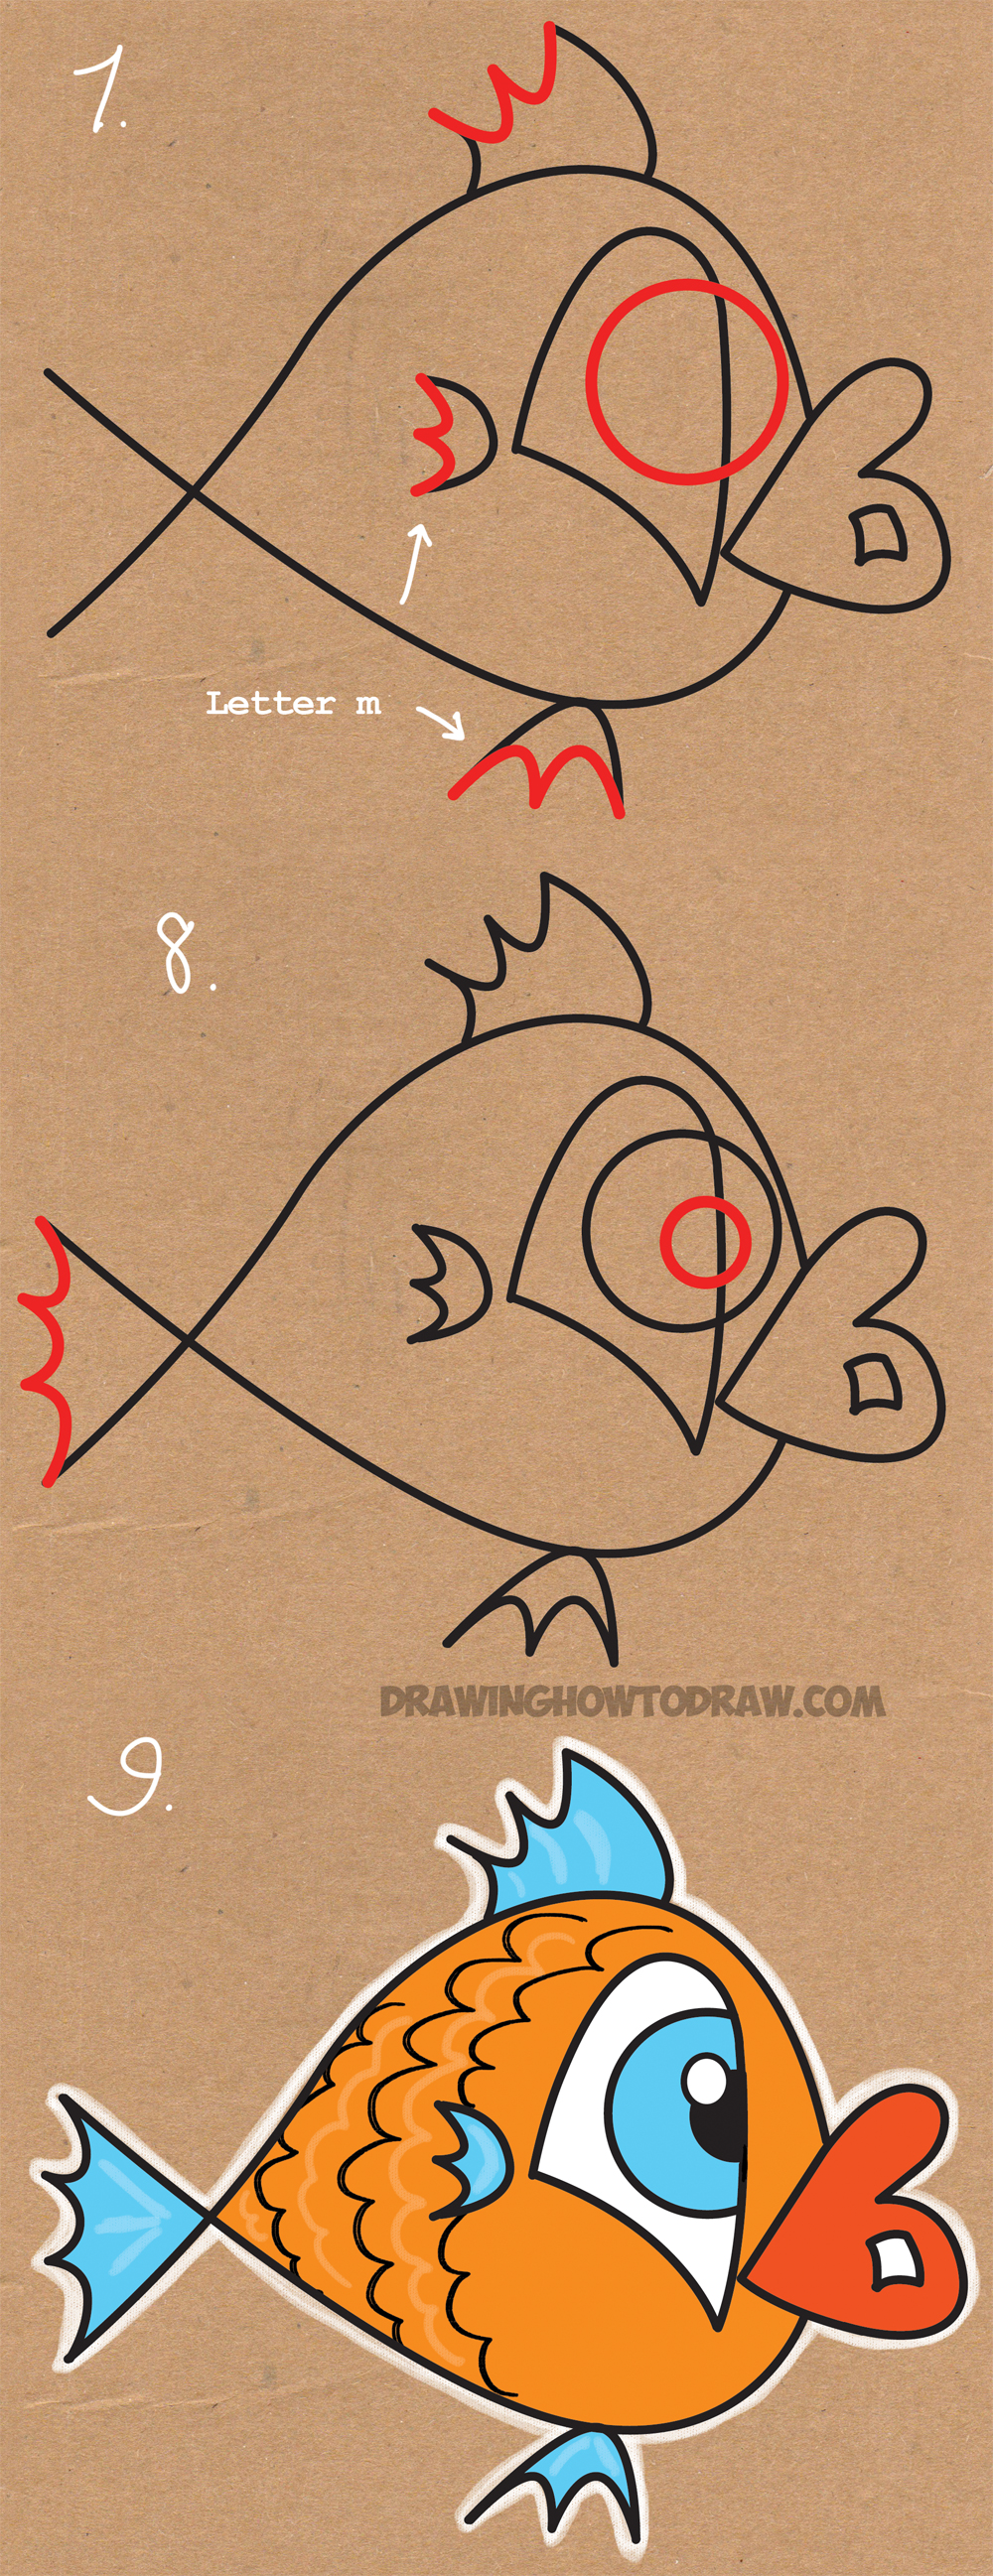 How To Draw A Cartoon Fish From The Number 13